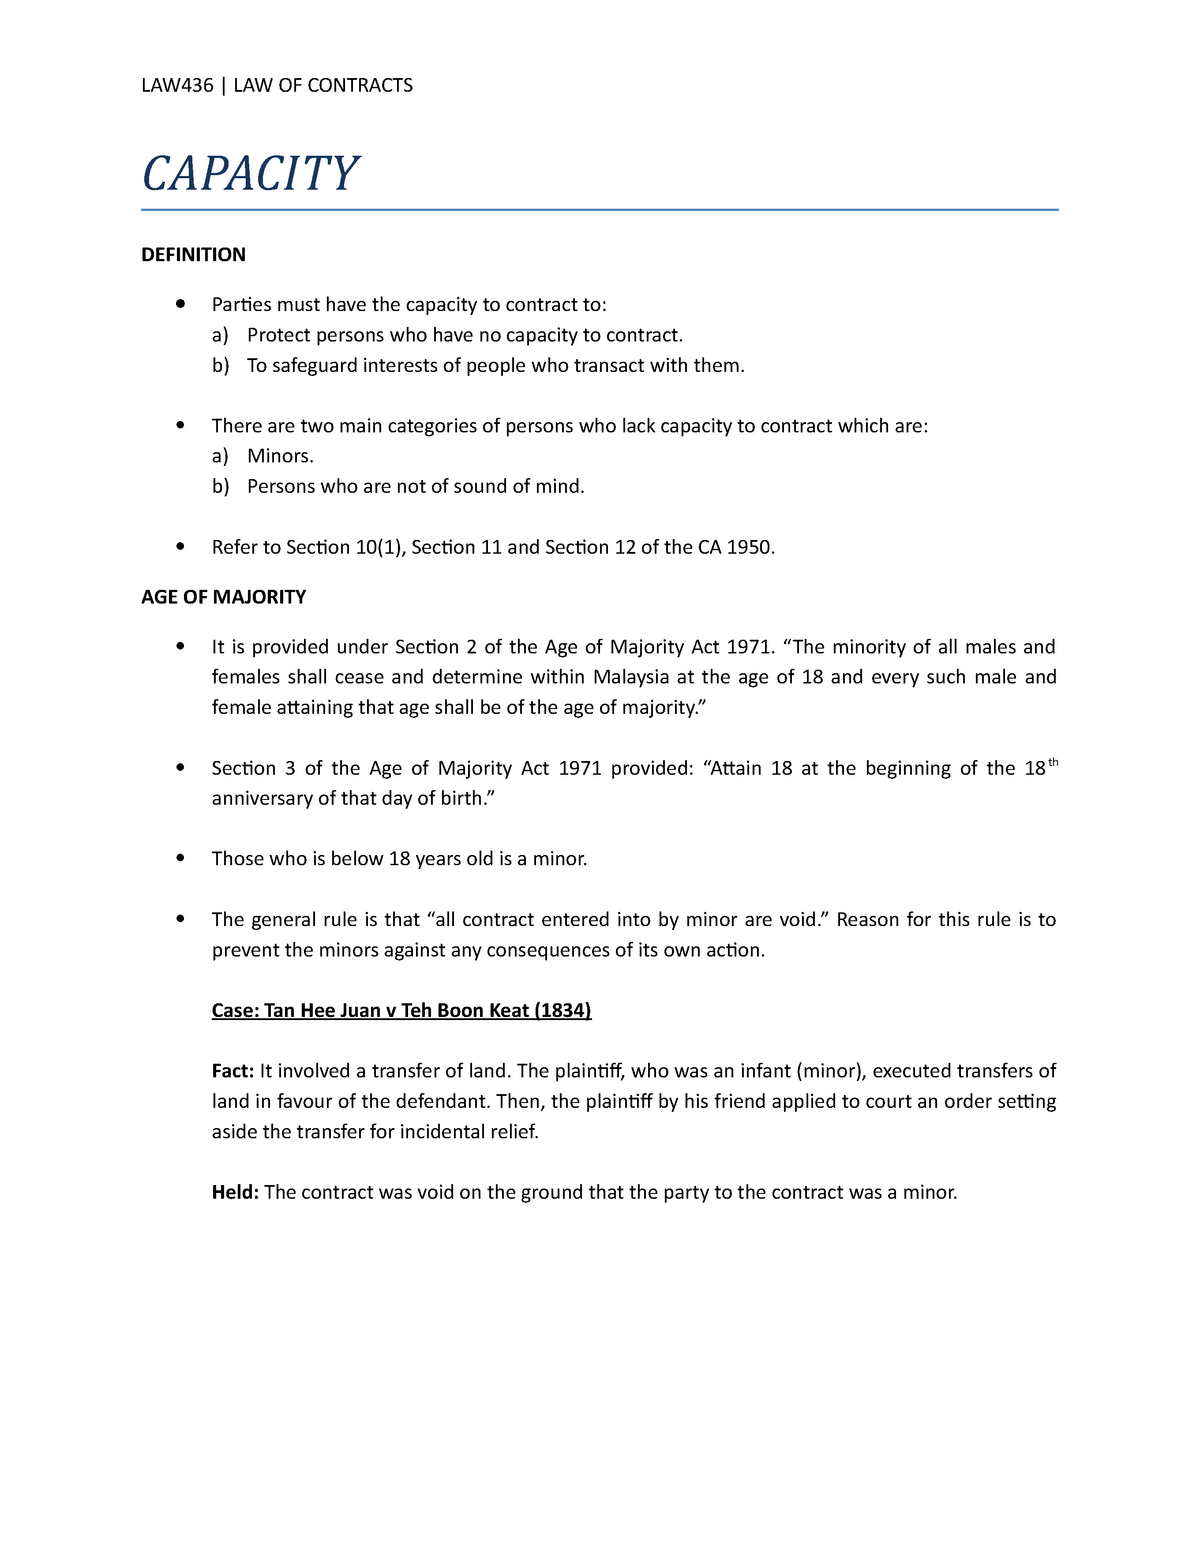 Capacity notes contracts law - LAW416: Business Law - StuDocu